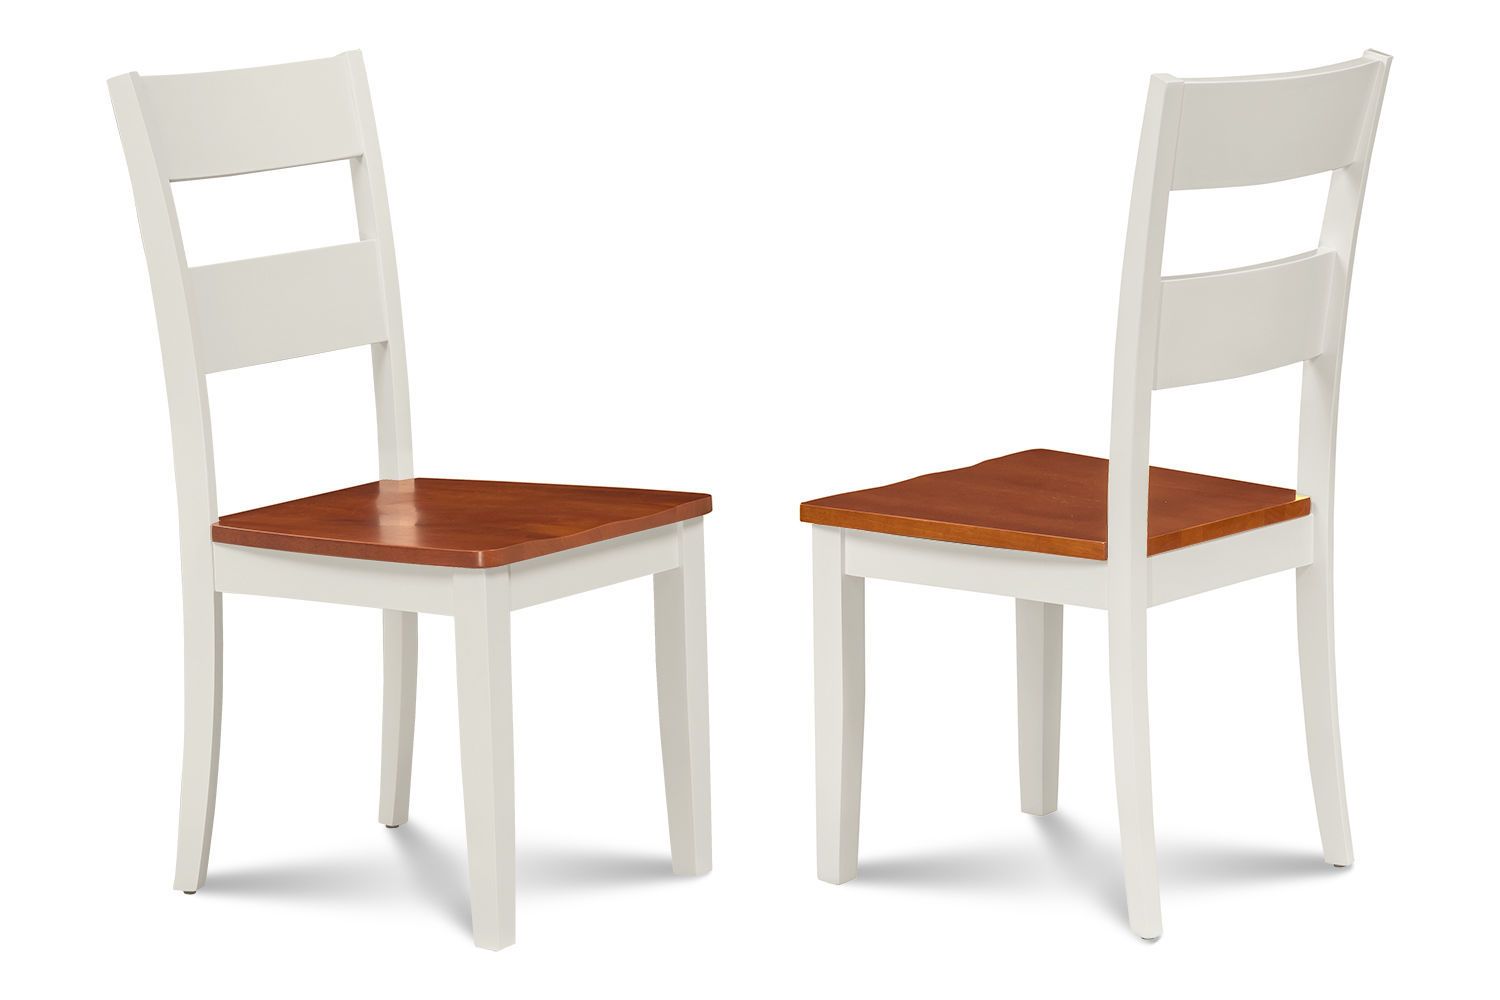 SET OF 4 KITCHEN DINING SIDE CHAIRS w/ WOODEN SEAT IN WHITE CHERRY